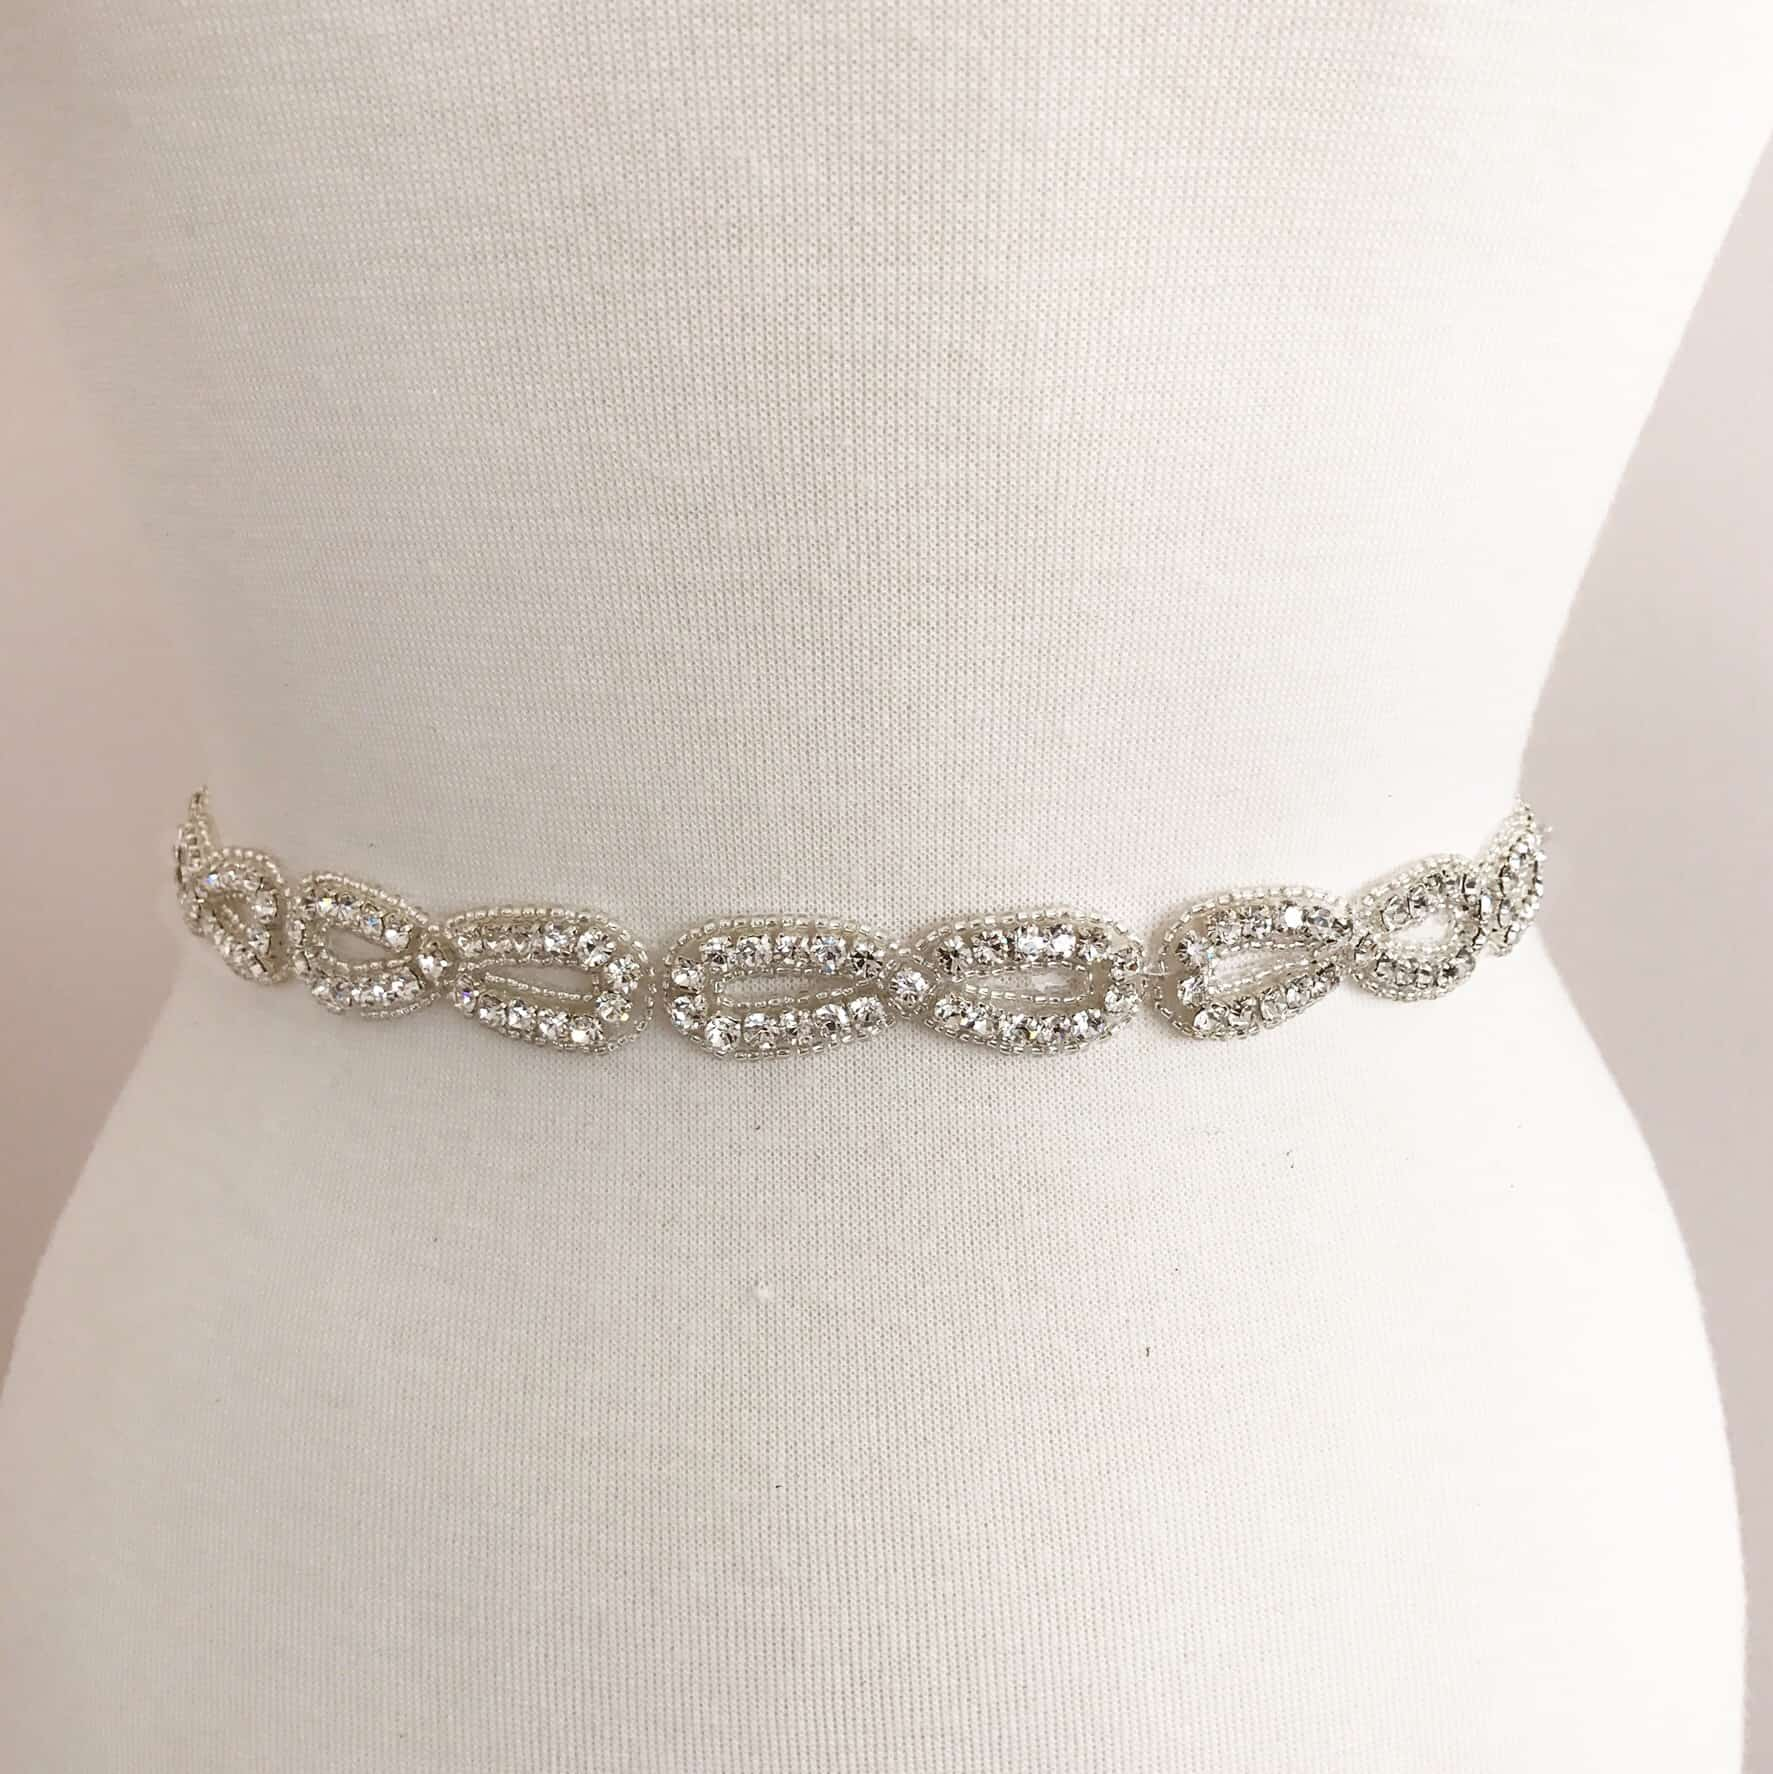 Loop Bow Rhinestone Beaded Trim